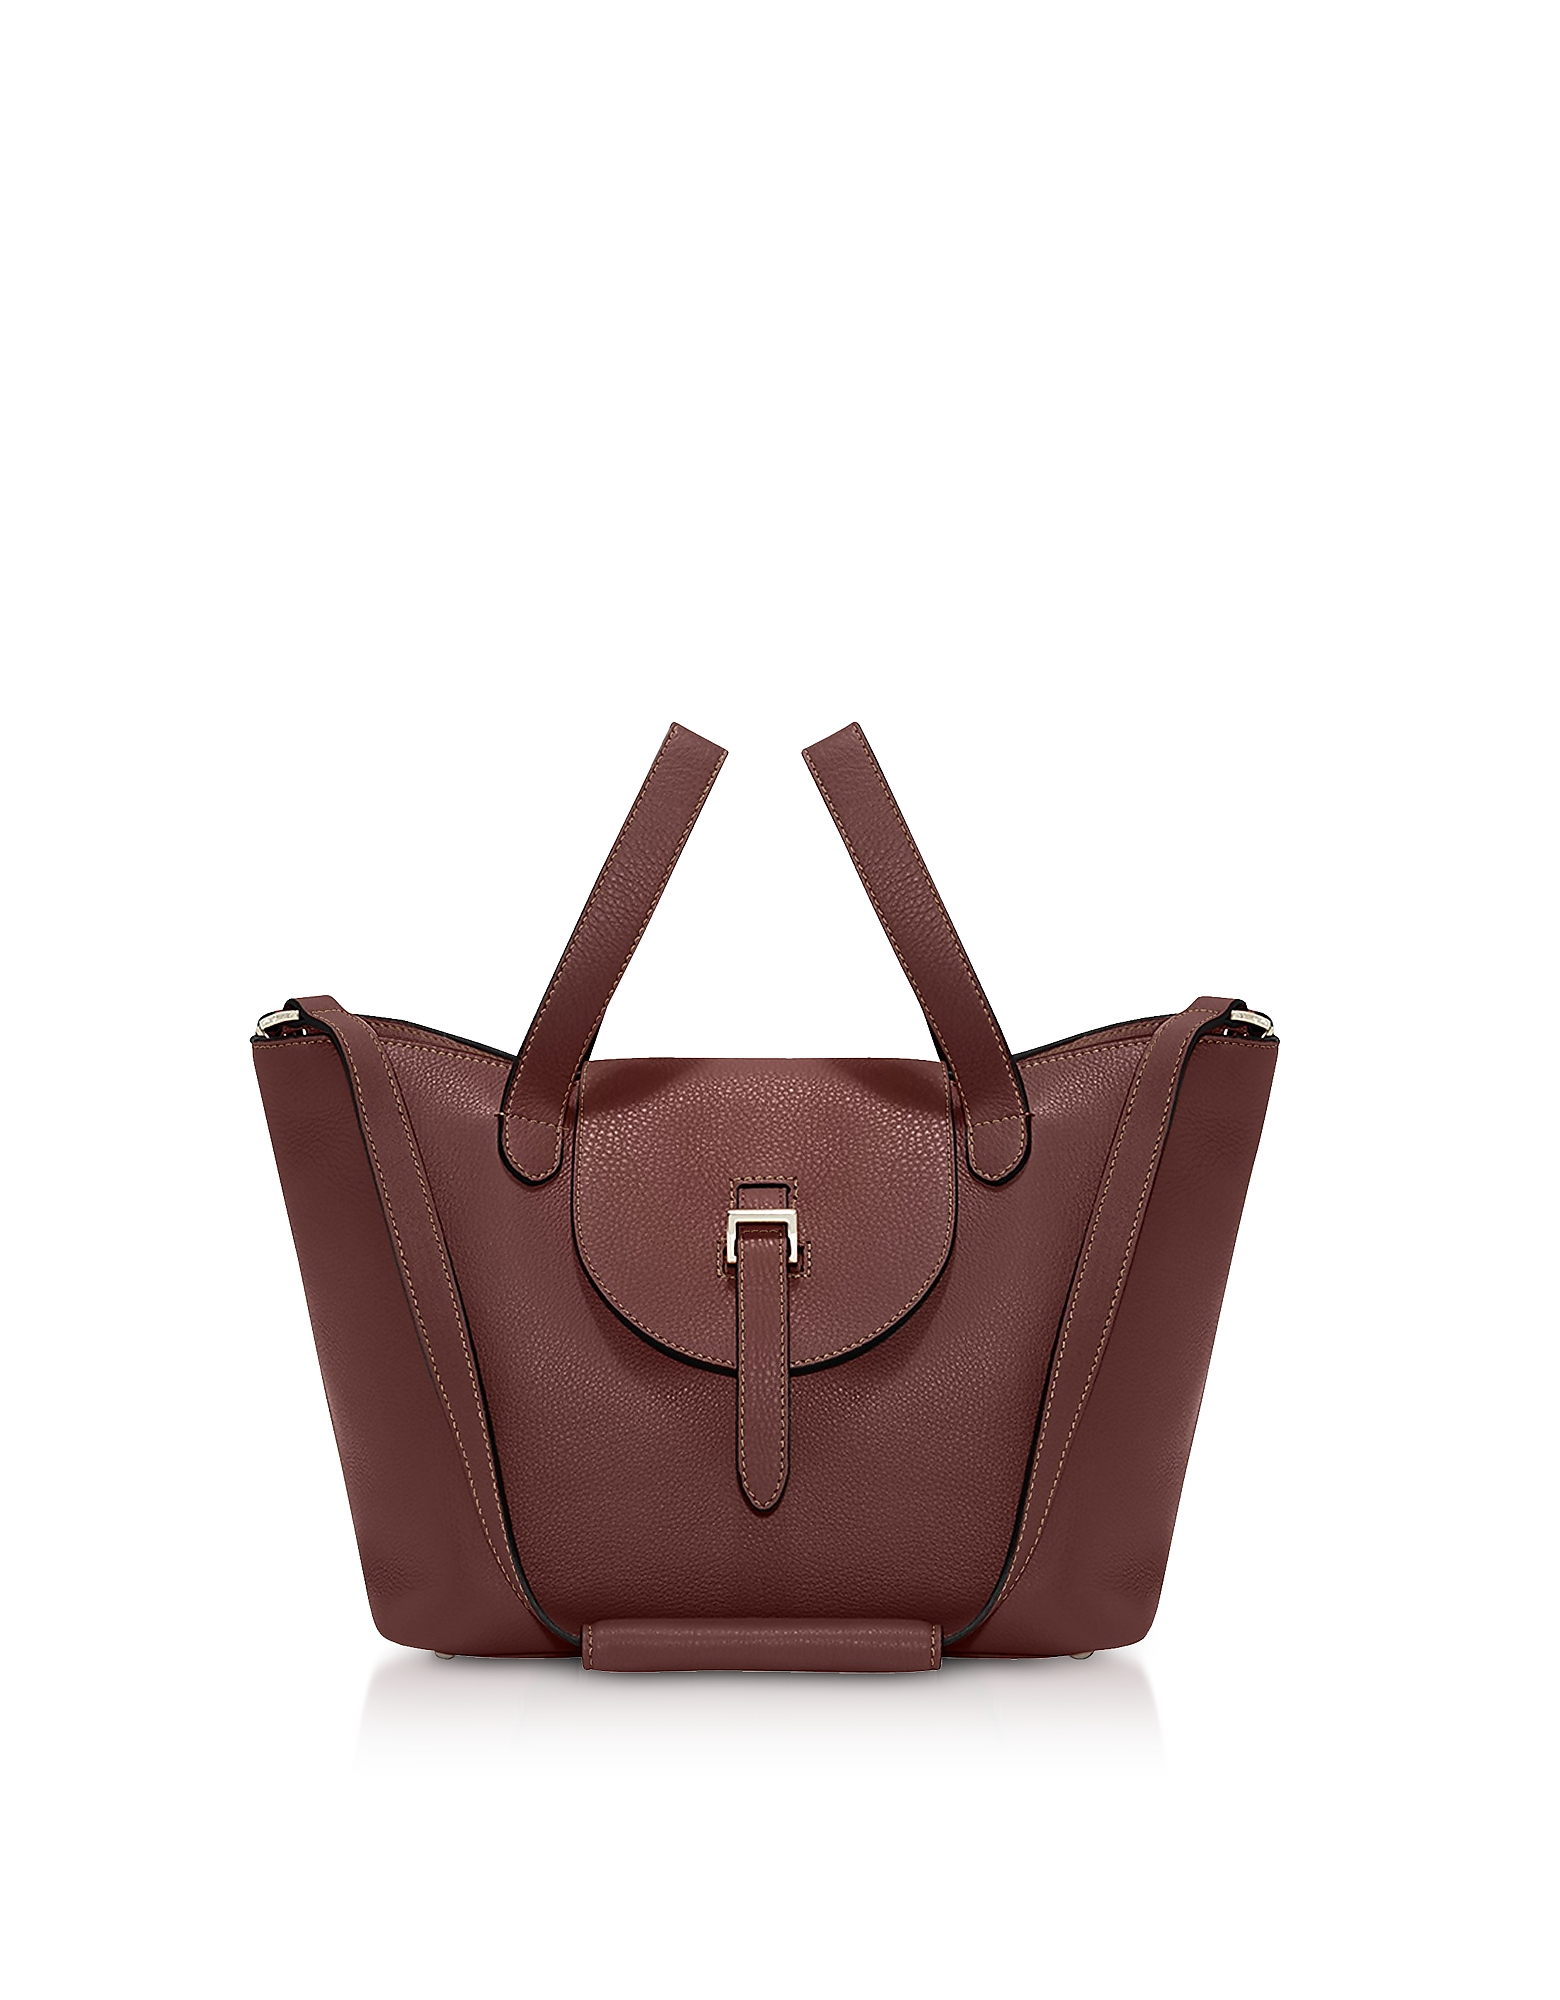 Meli Melo ARGAN THELA MEDIUM TOTE BAG